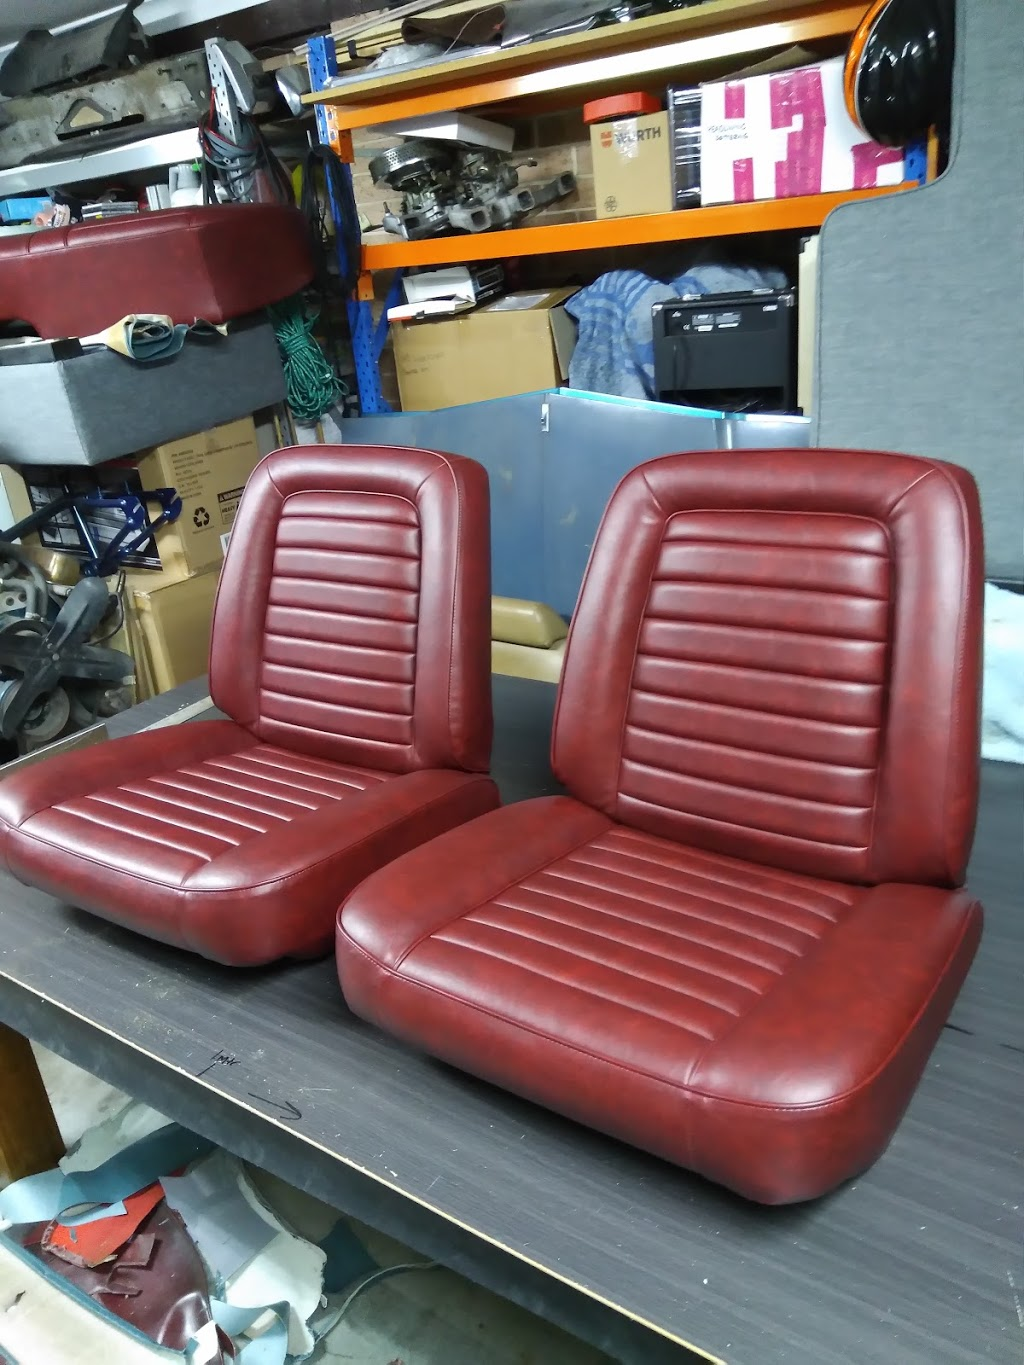 Valley Auto Upholstery - Automotive Fabrics | furniture store | 26 Dale Ave, Chain Valley Bay NSW 2259, Australia | 0409582681 OR +61 409 582 681